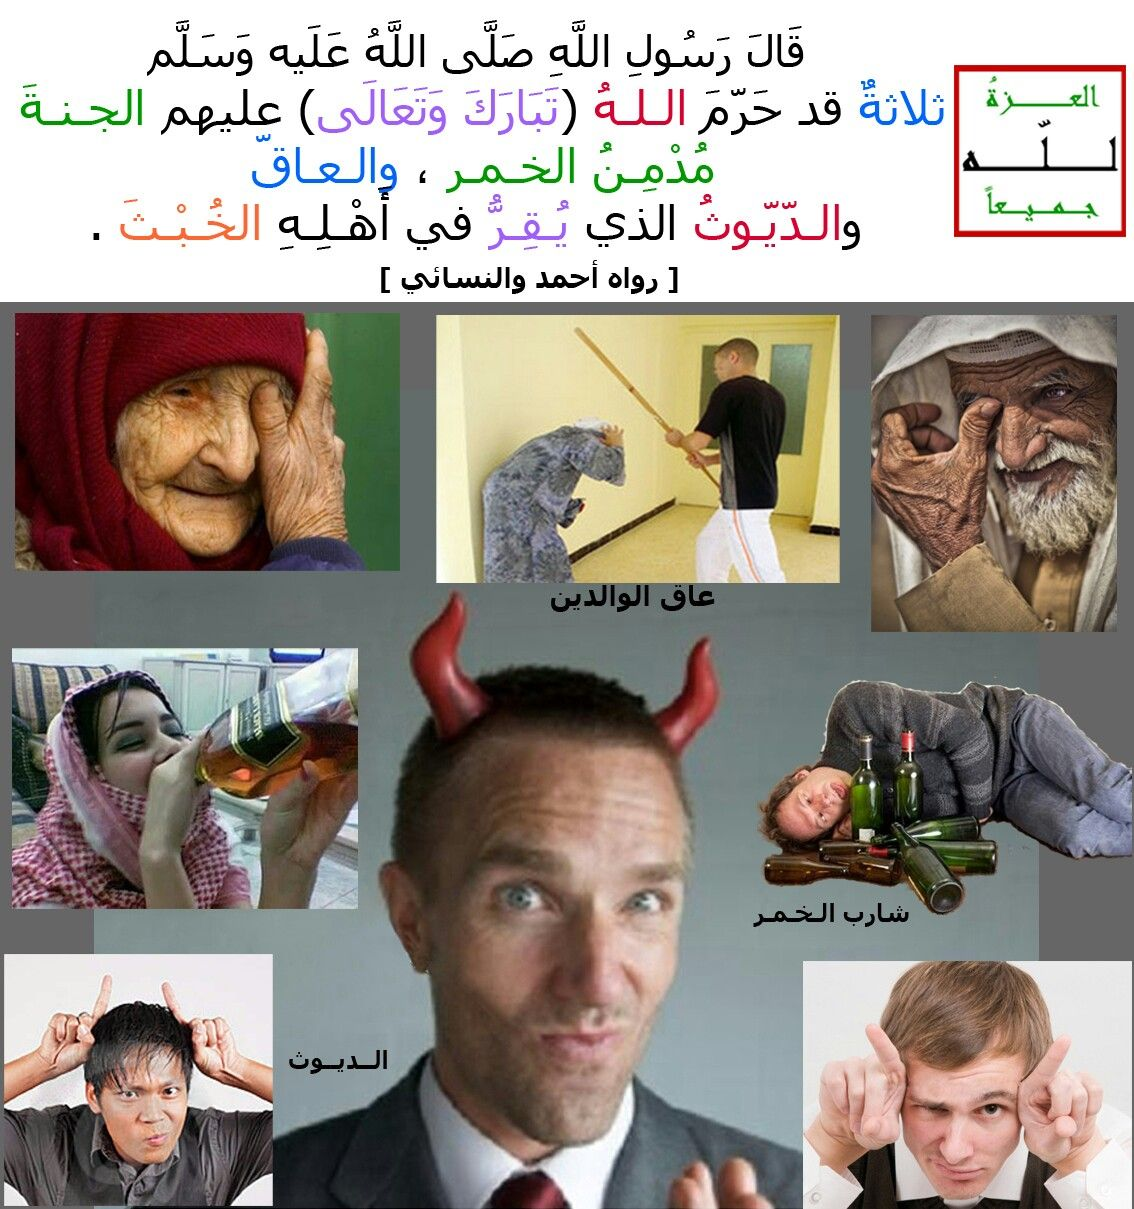 Pin By Mahmoud A J Shalabi On All Glory To Allah العزة لله جميعا Movie Posters Poster Movies